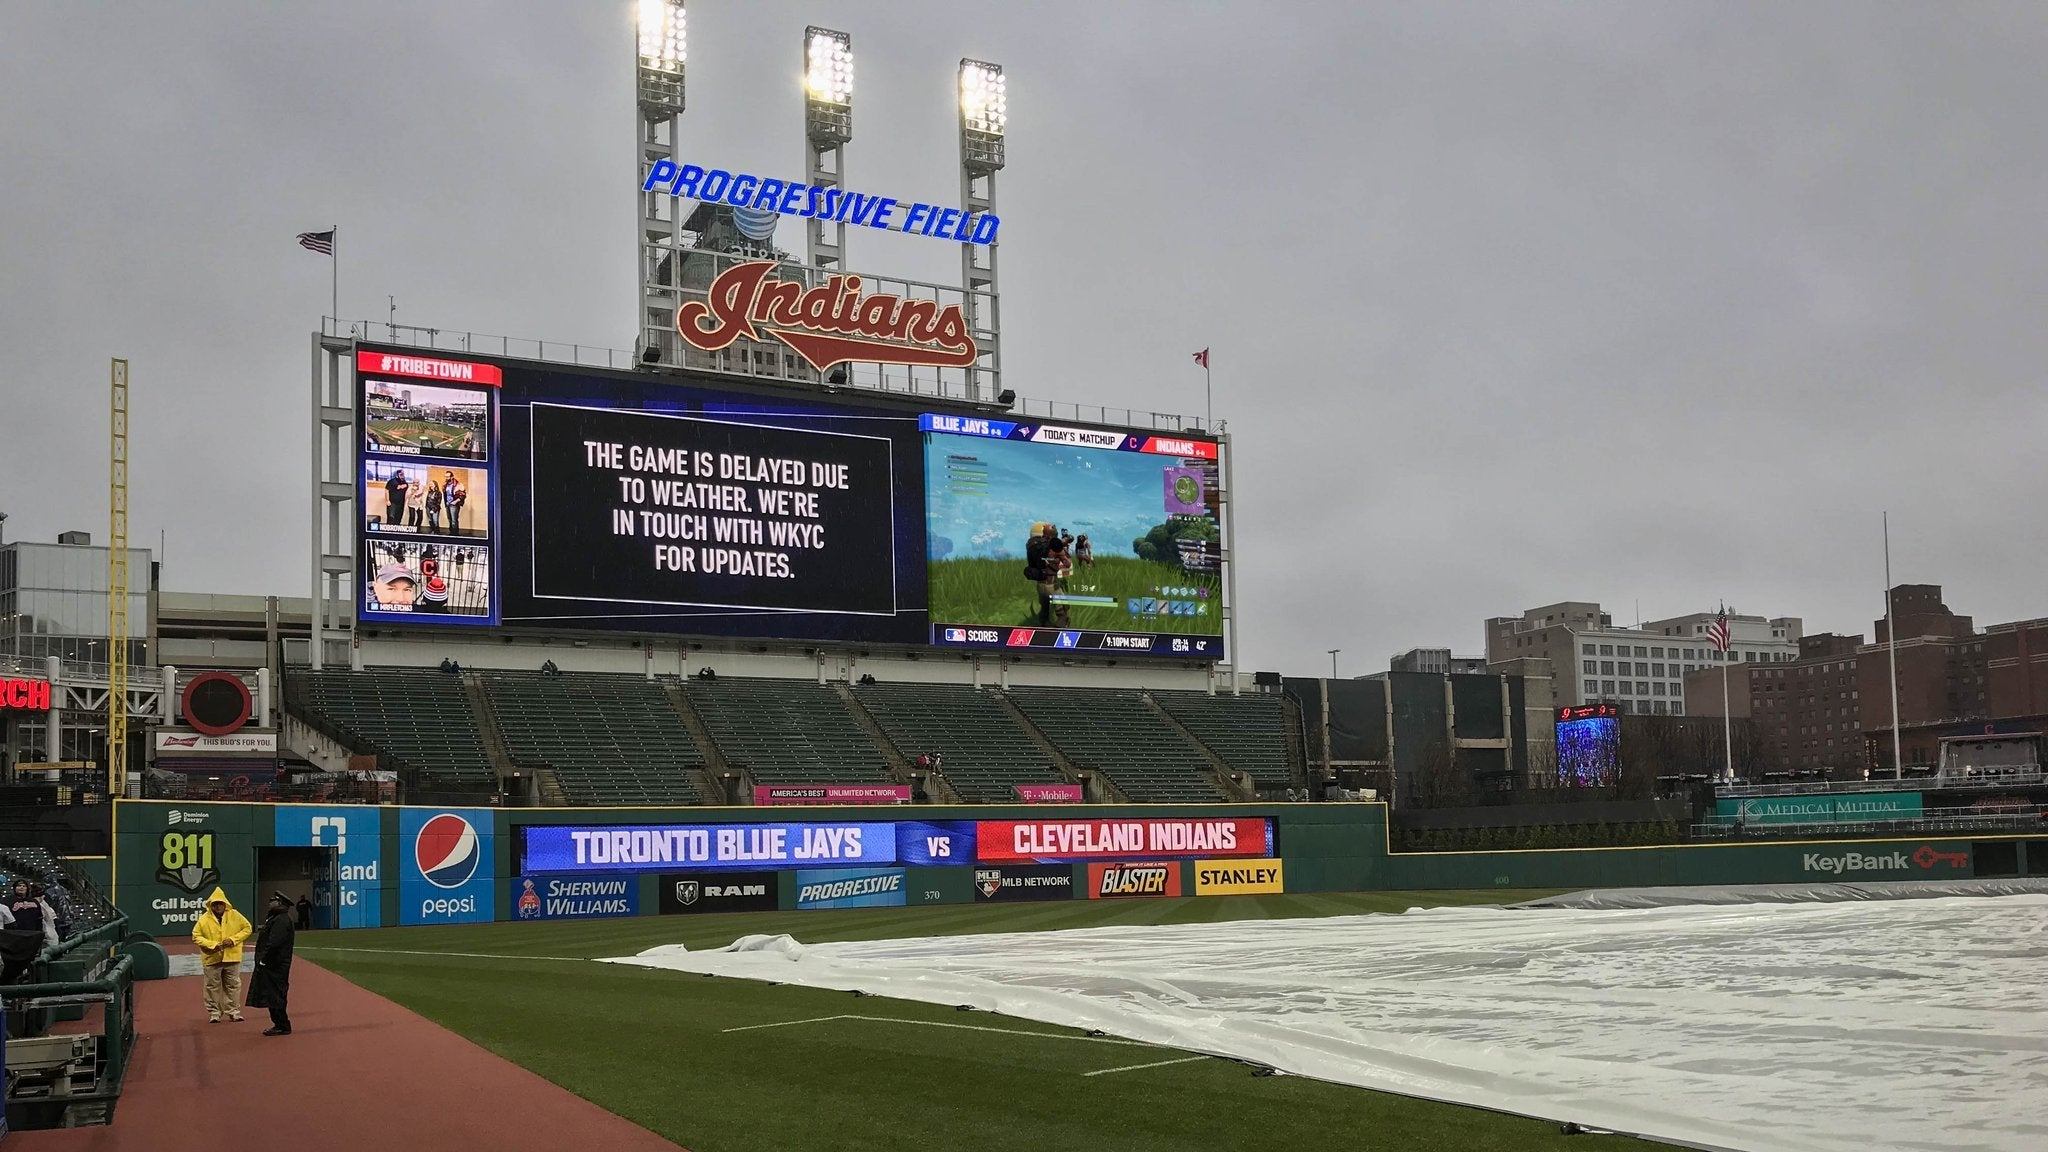 Cleveland Indians Make The Best Of Bad Weather With Some JumbotronFortnite